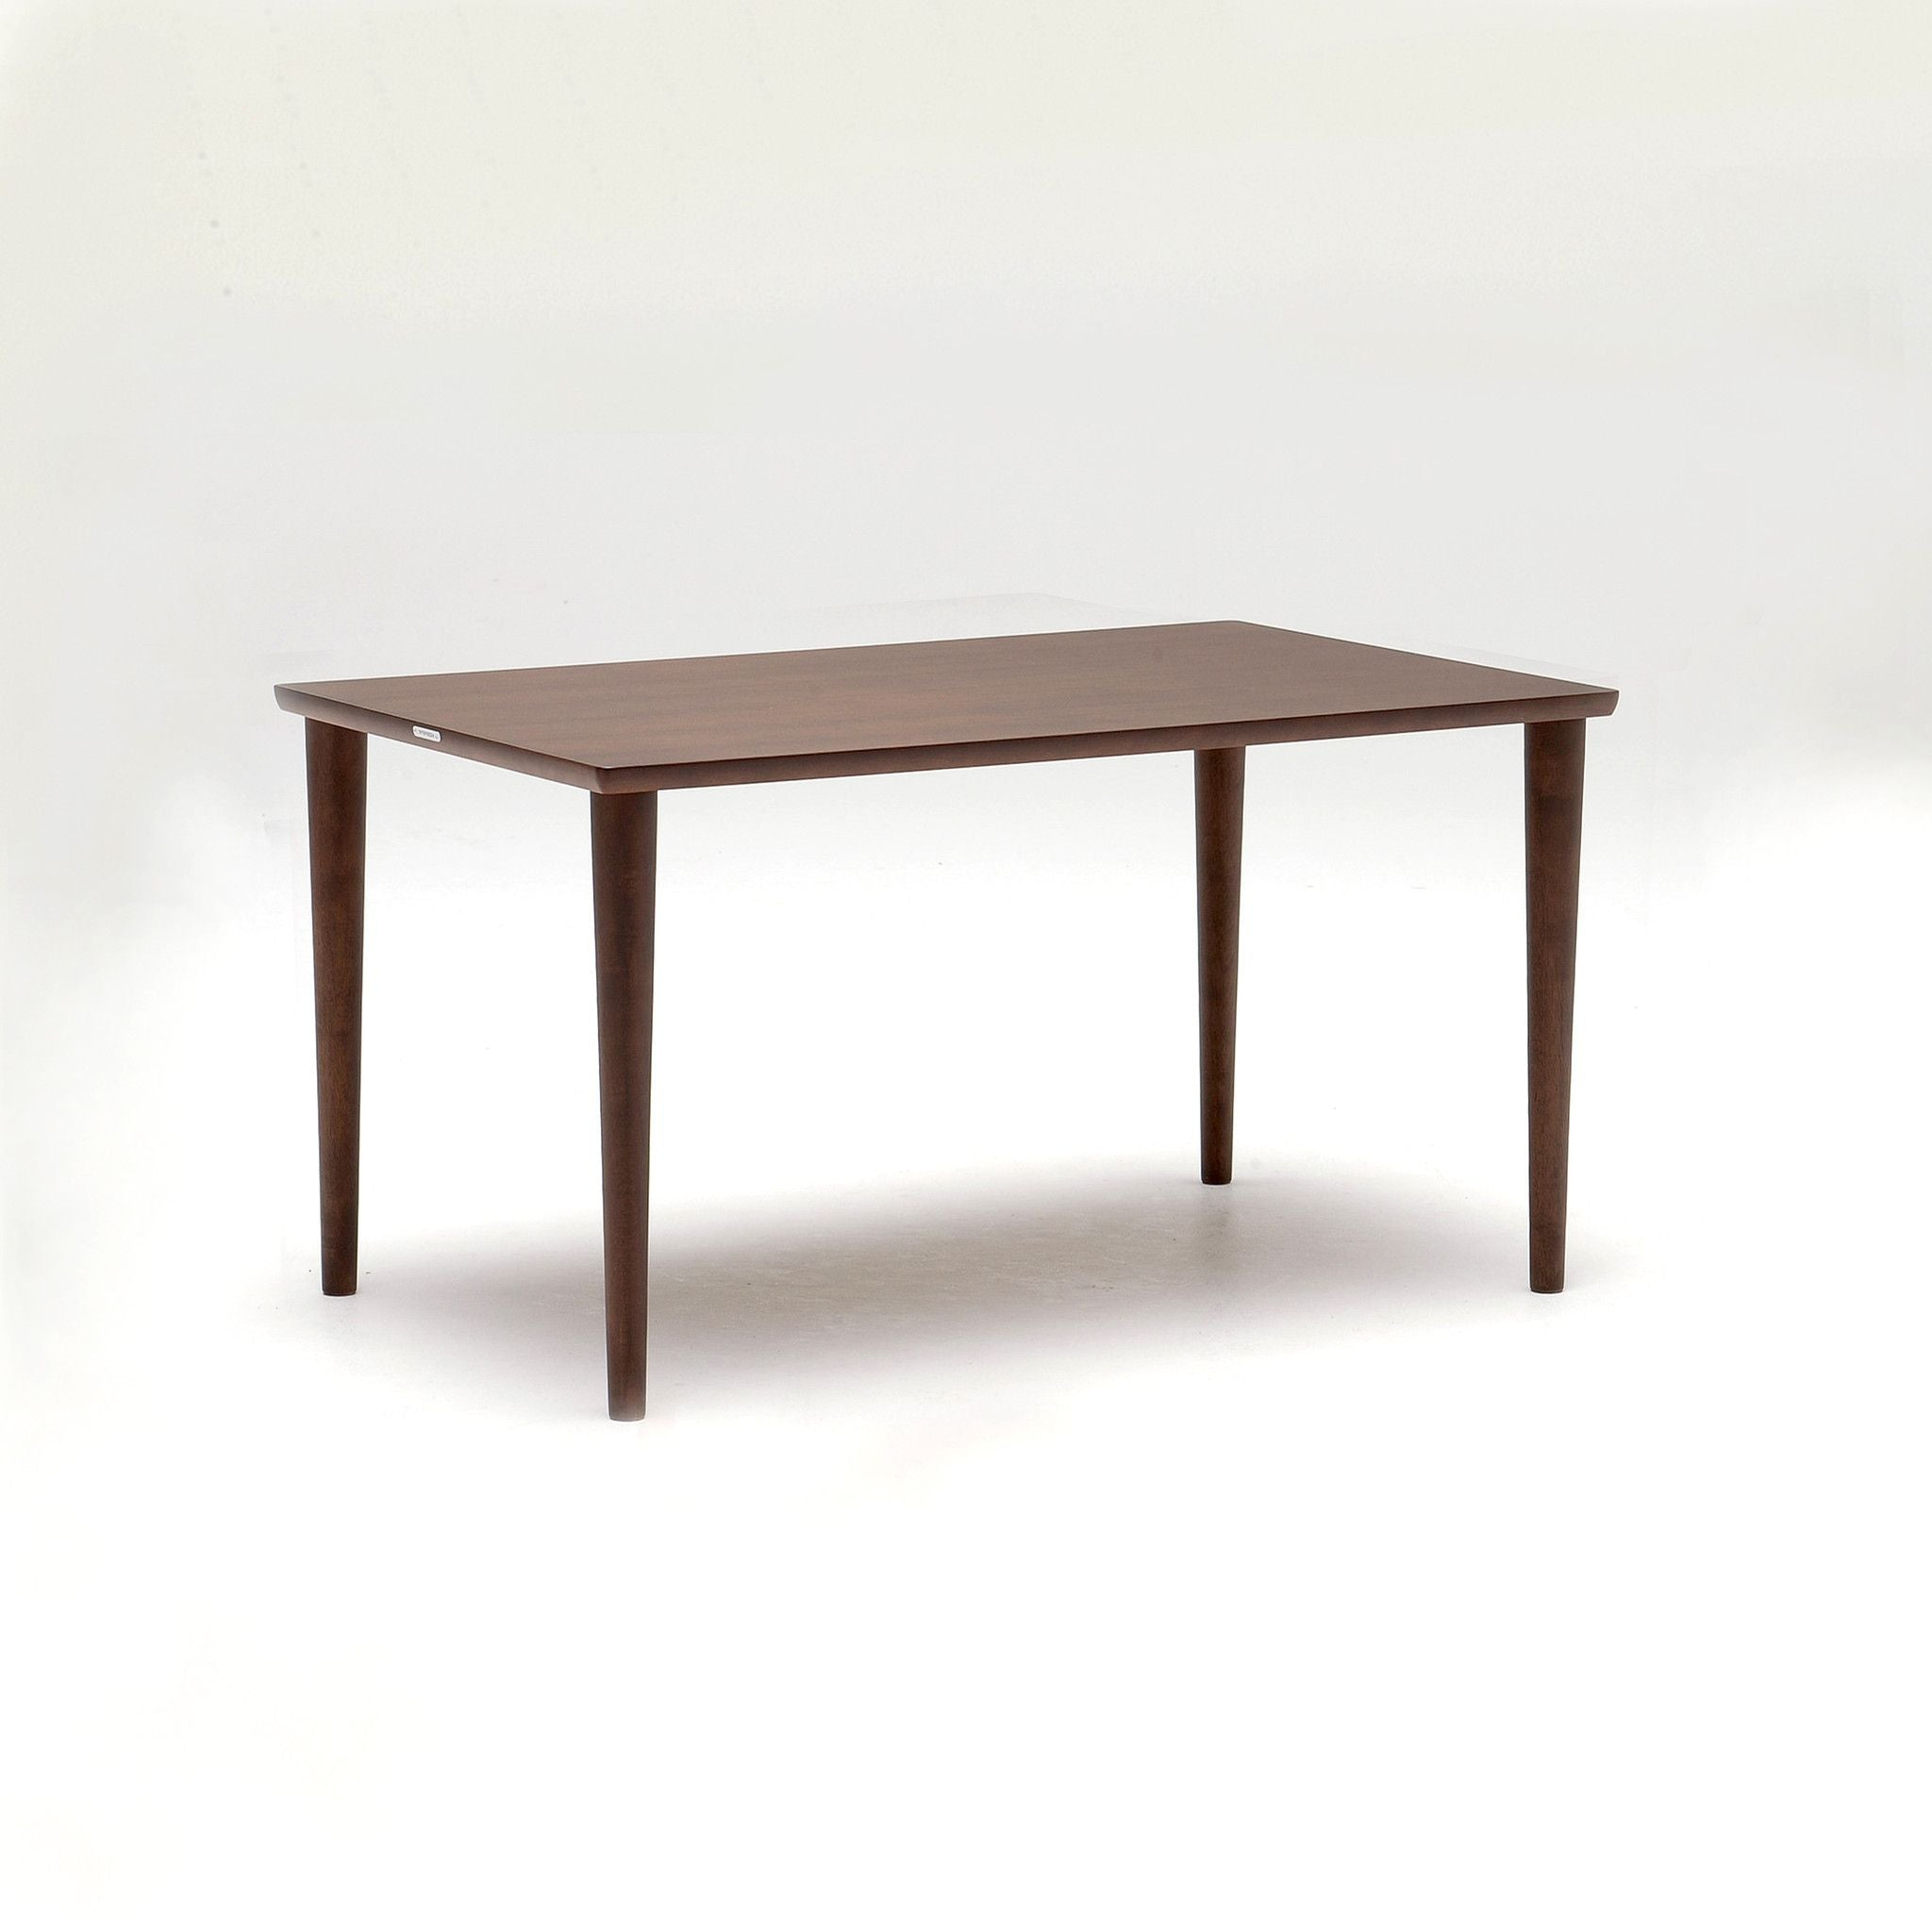 Karimoku60 - dining table 1300 mocha brown - Dining Table